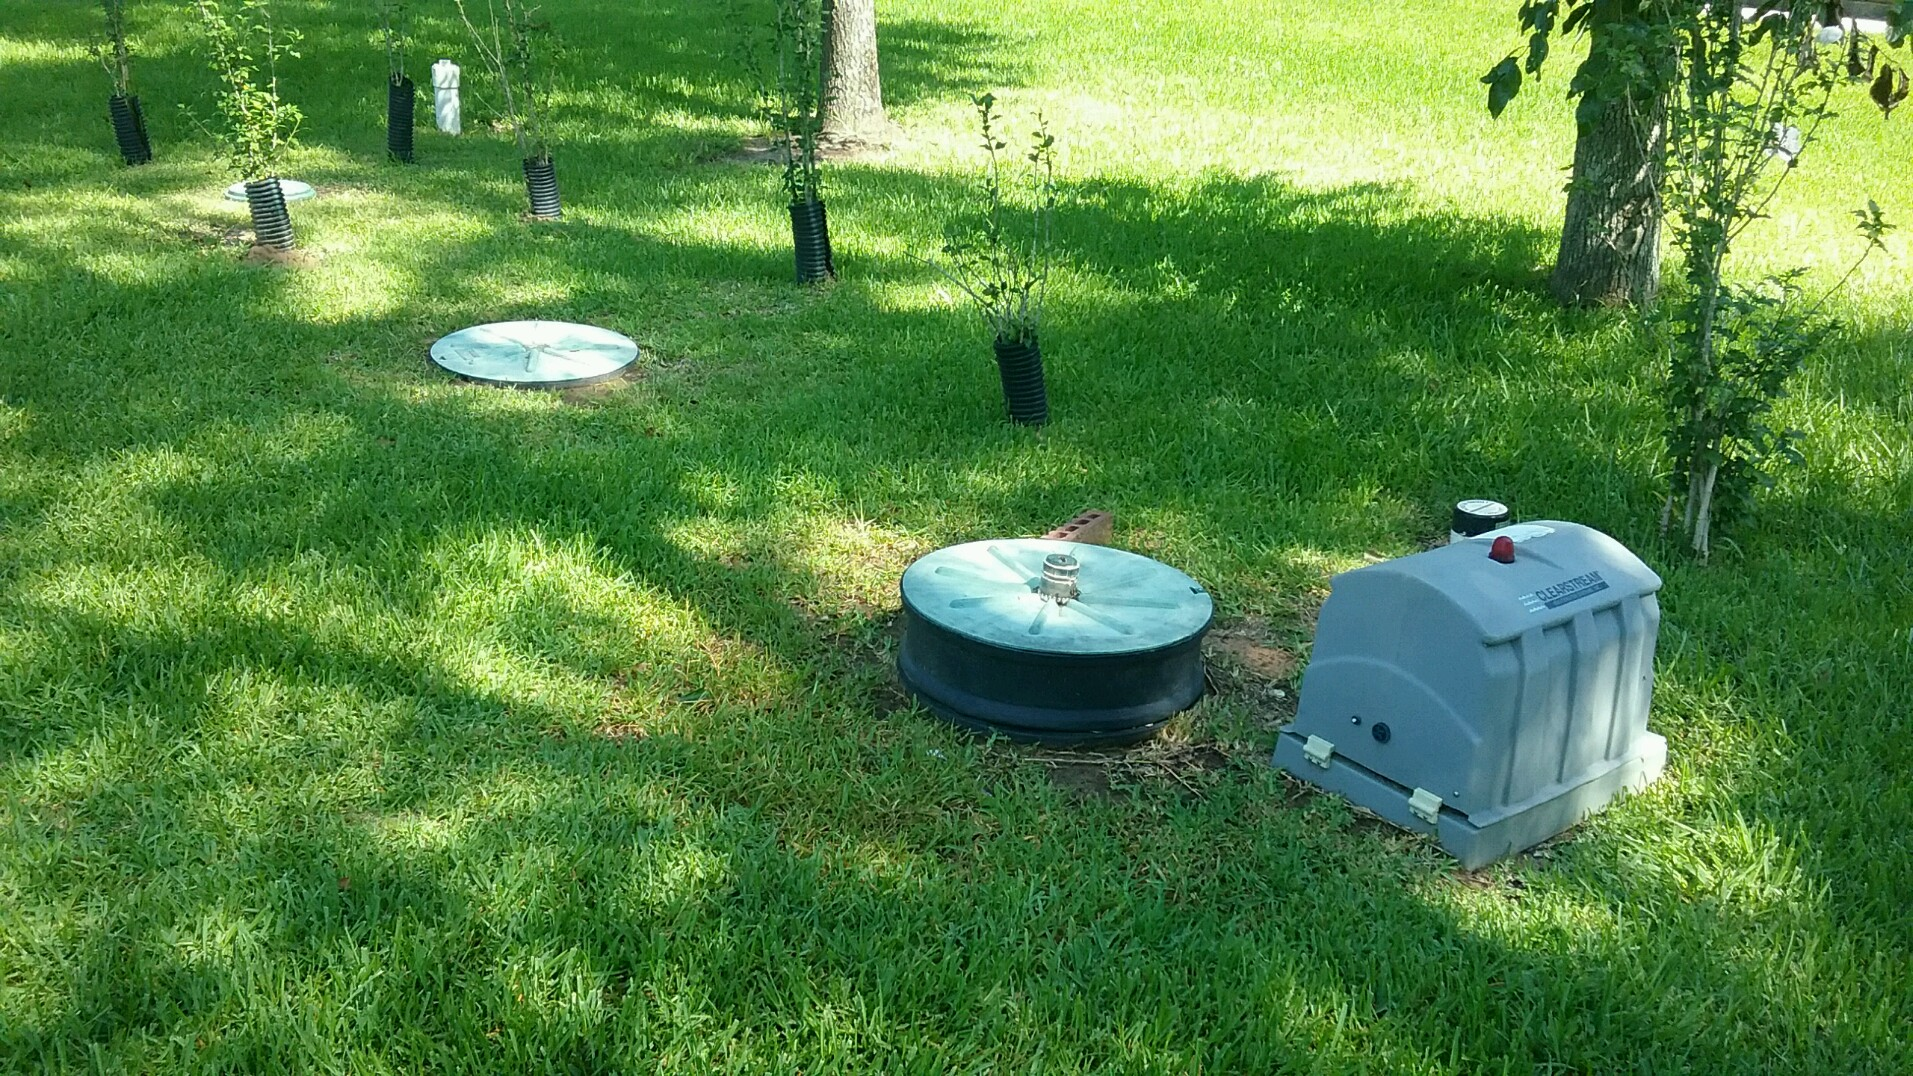 What happens if you don't empty your septic tank